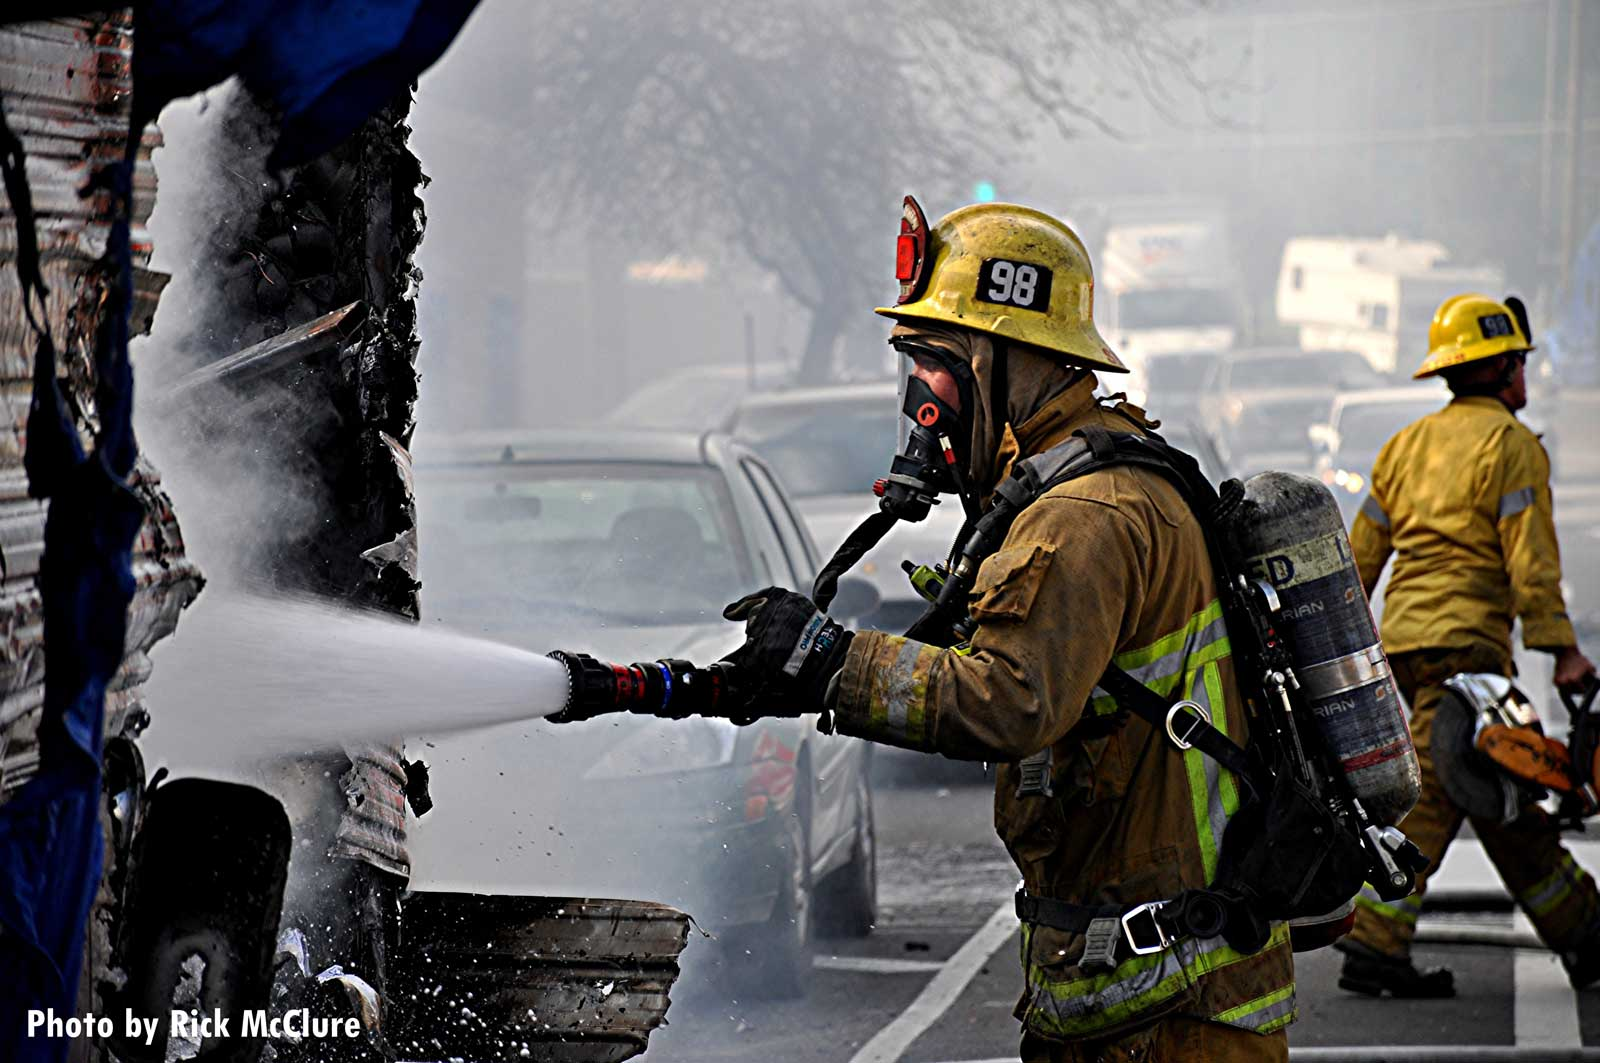 LAFD member with a hoseline